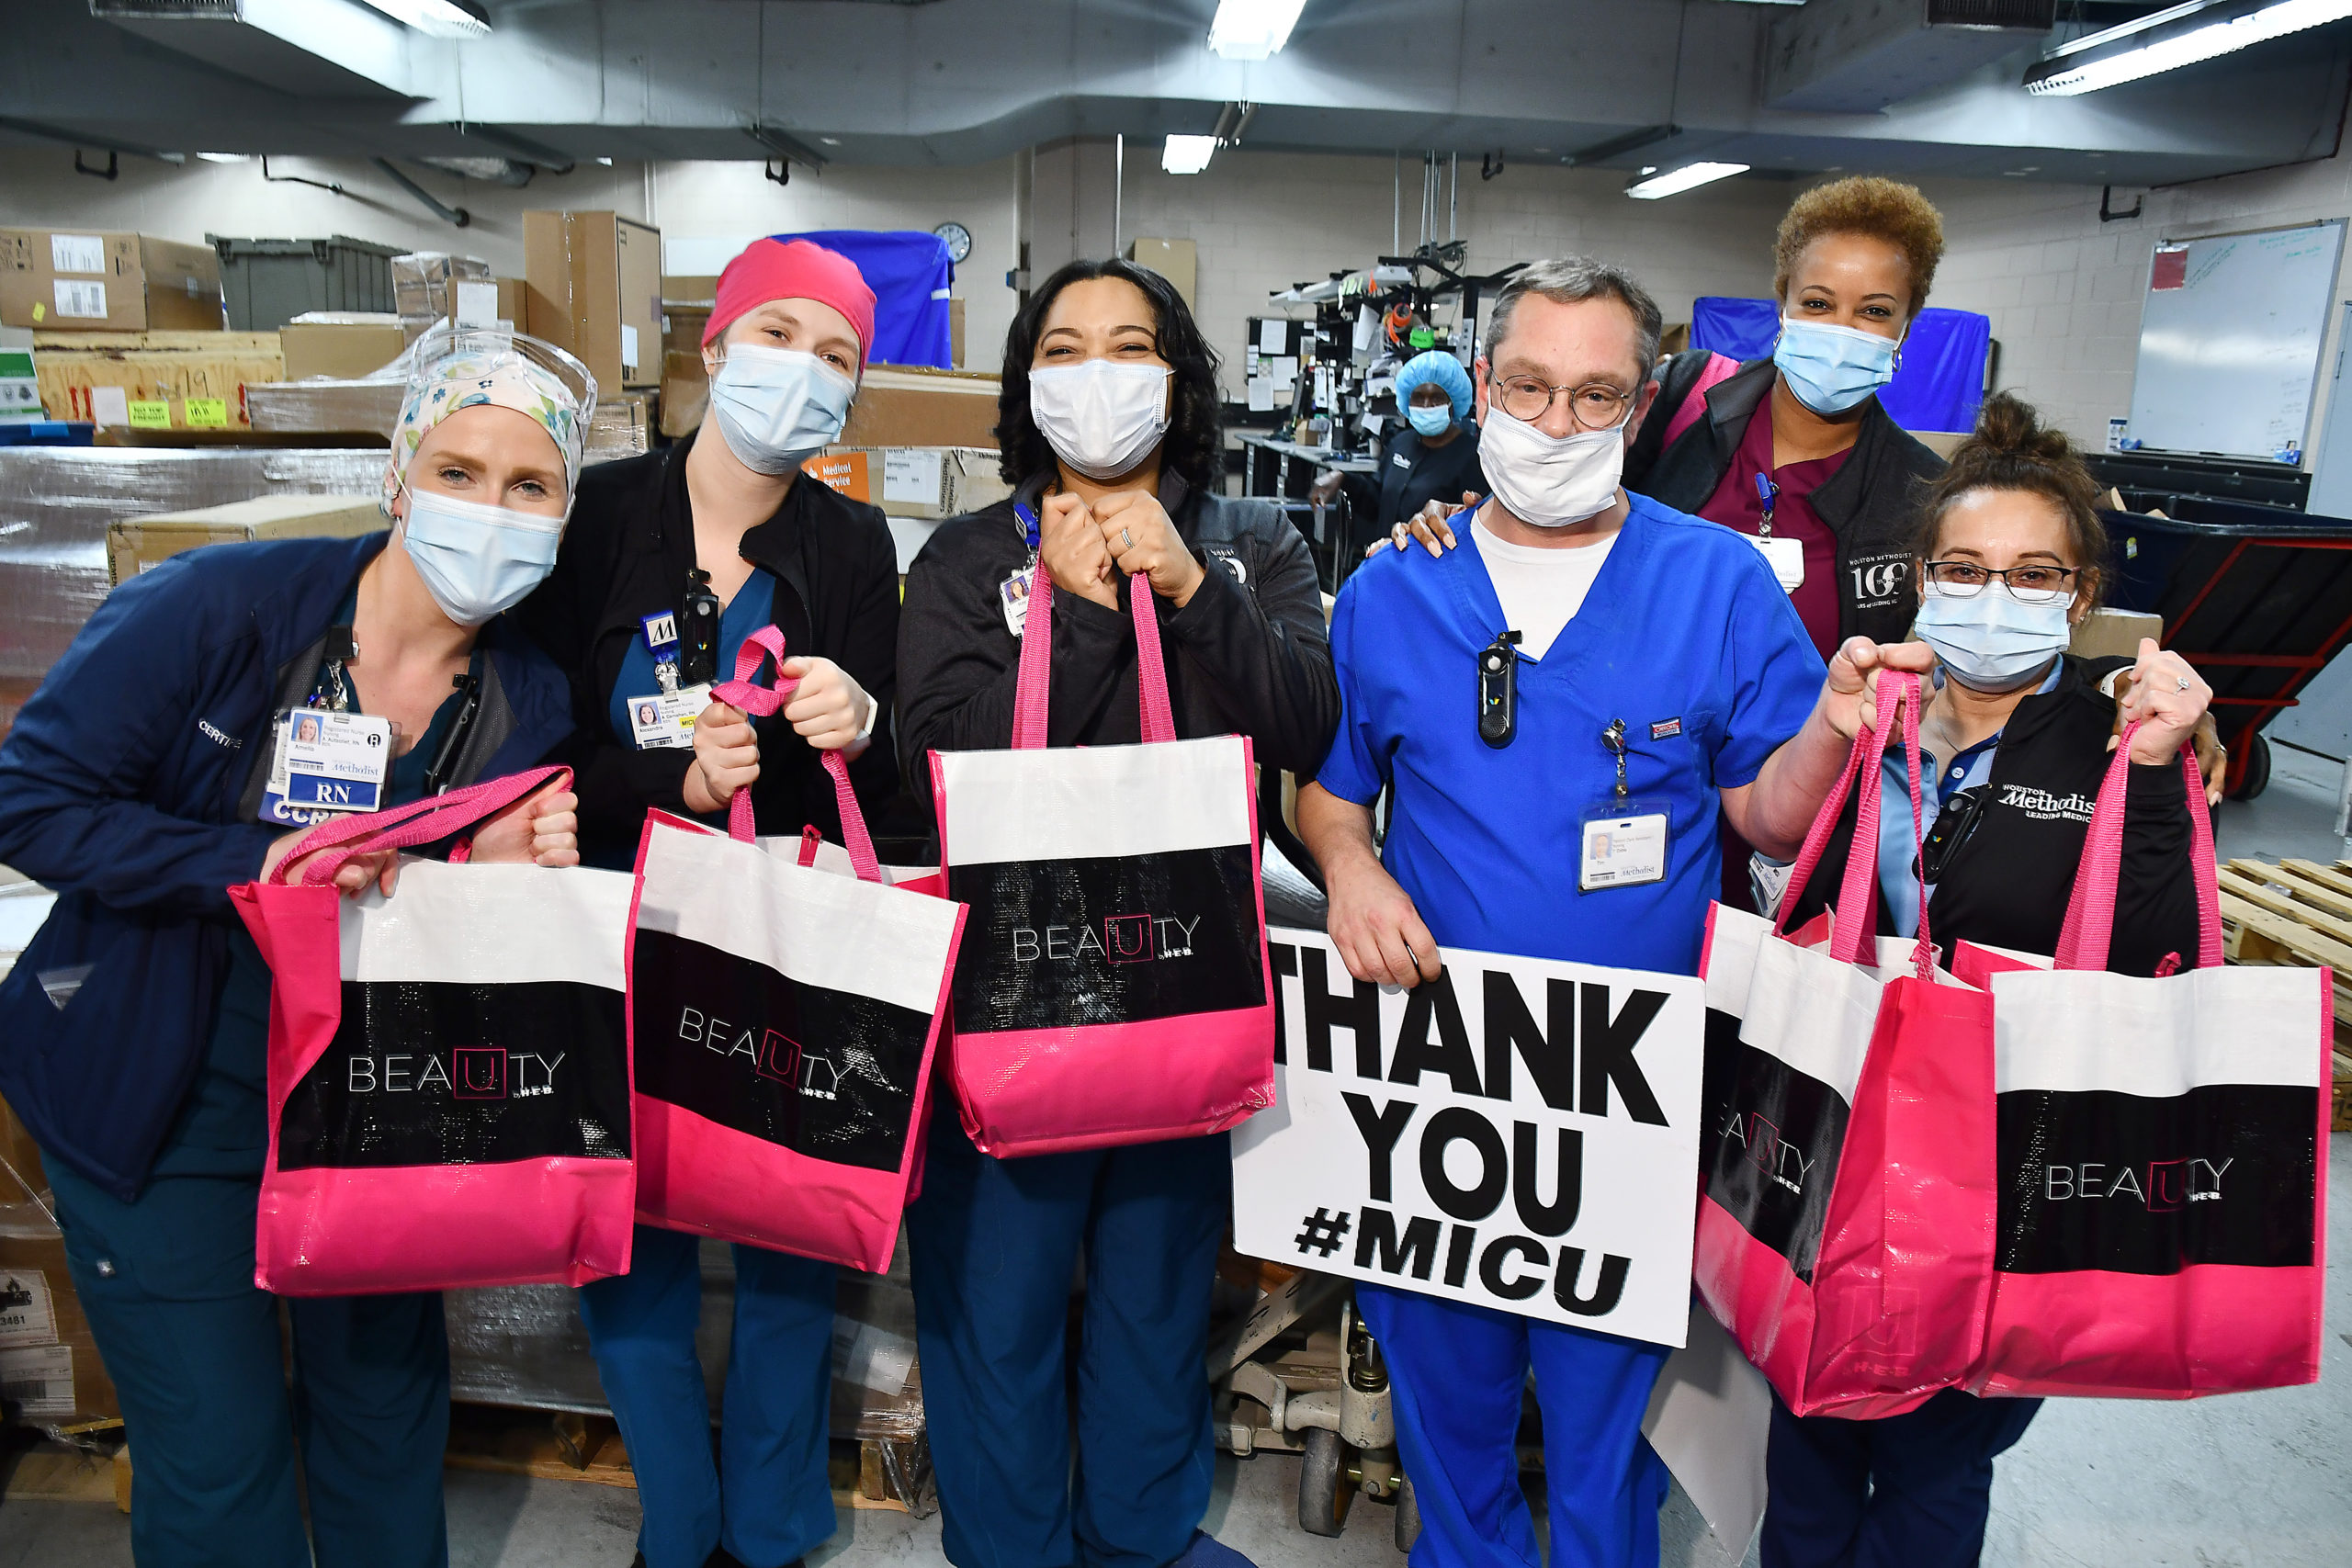 H-E-B surprises hospital workers across Texas with gift bags of beauty essentials - H-E-B Newsroom